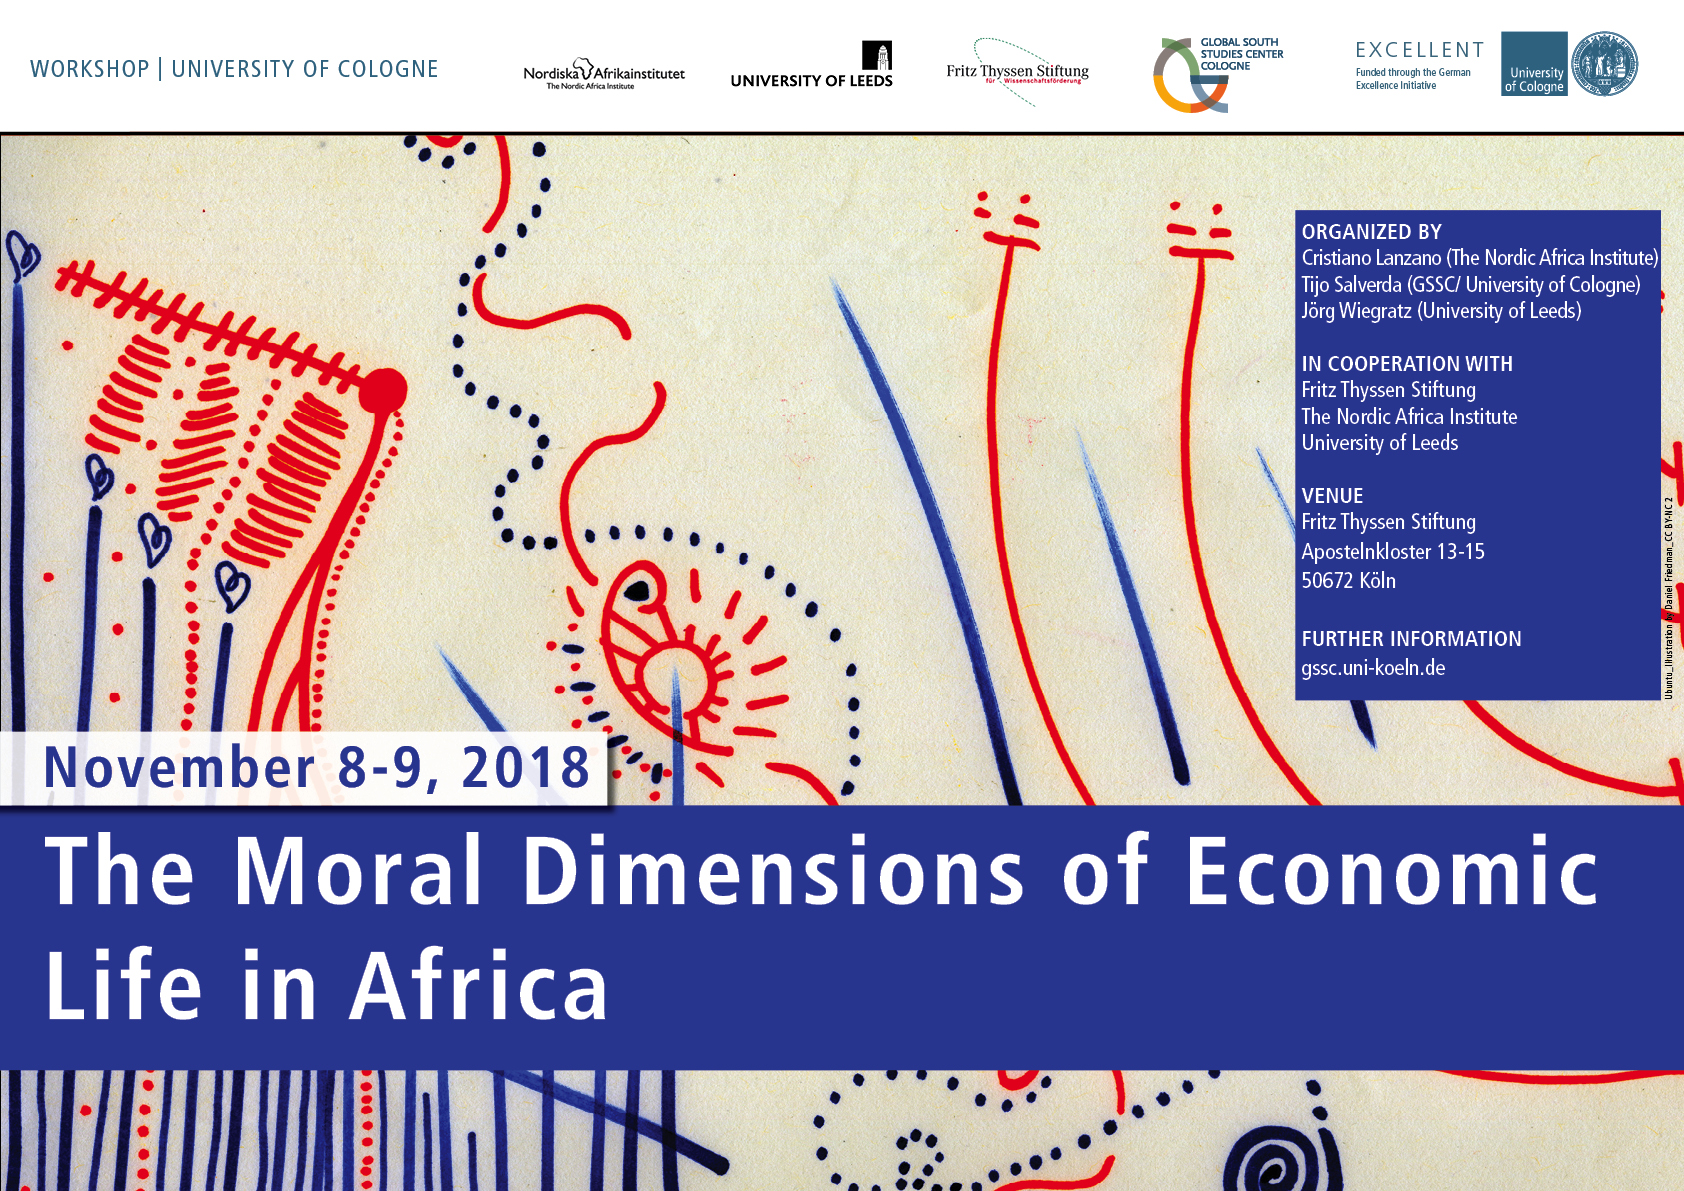 Workshop: The Moral Dimensions of Economic Life in Africa.